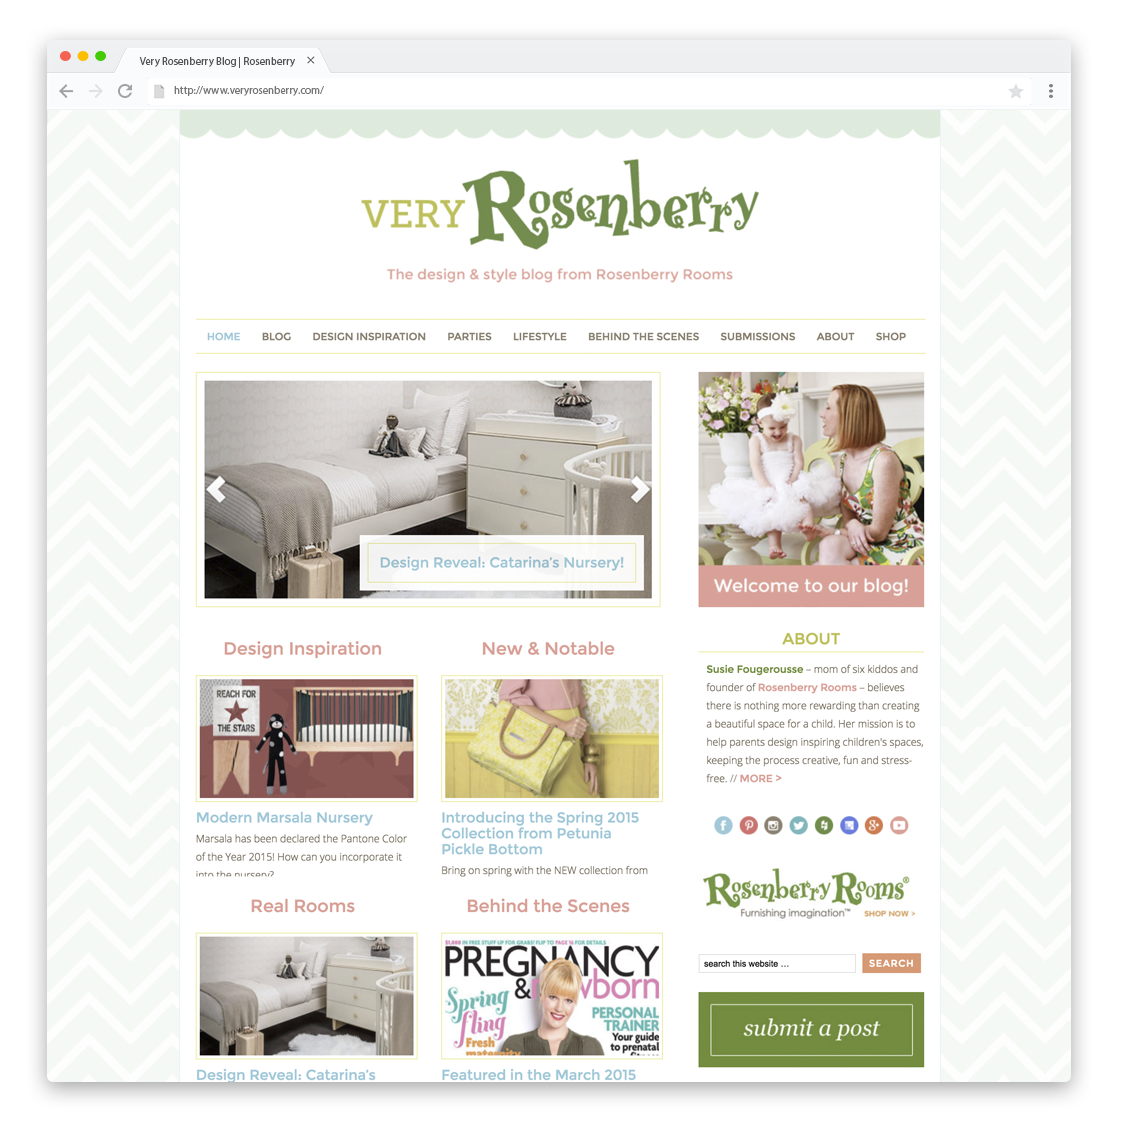 veryrosenberry-website1.png